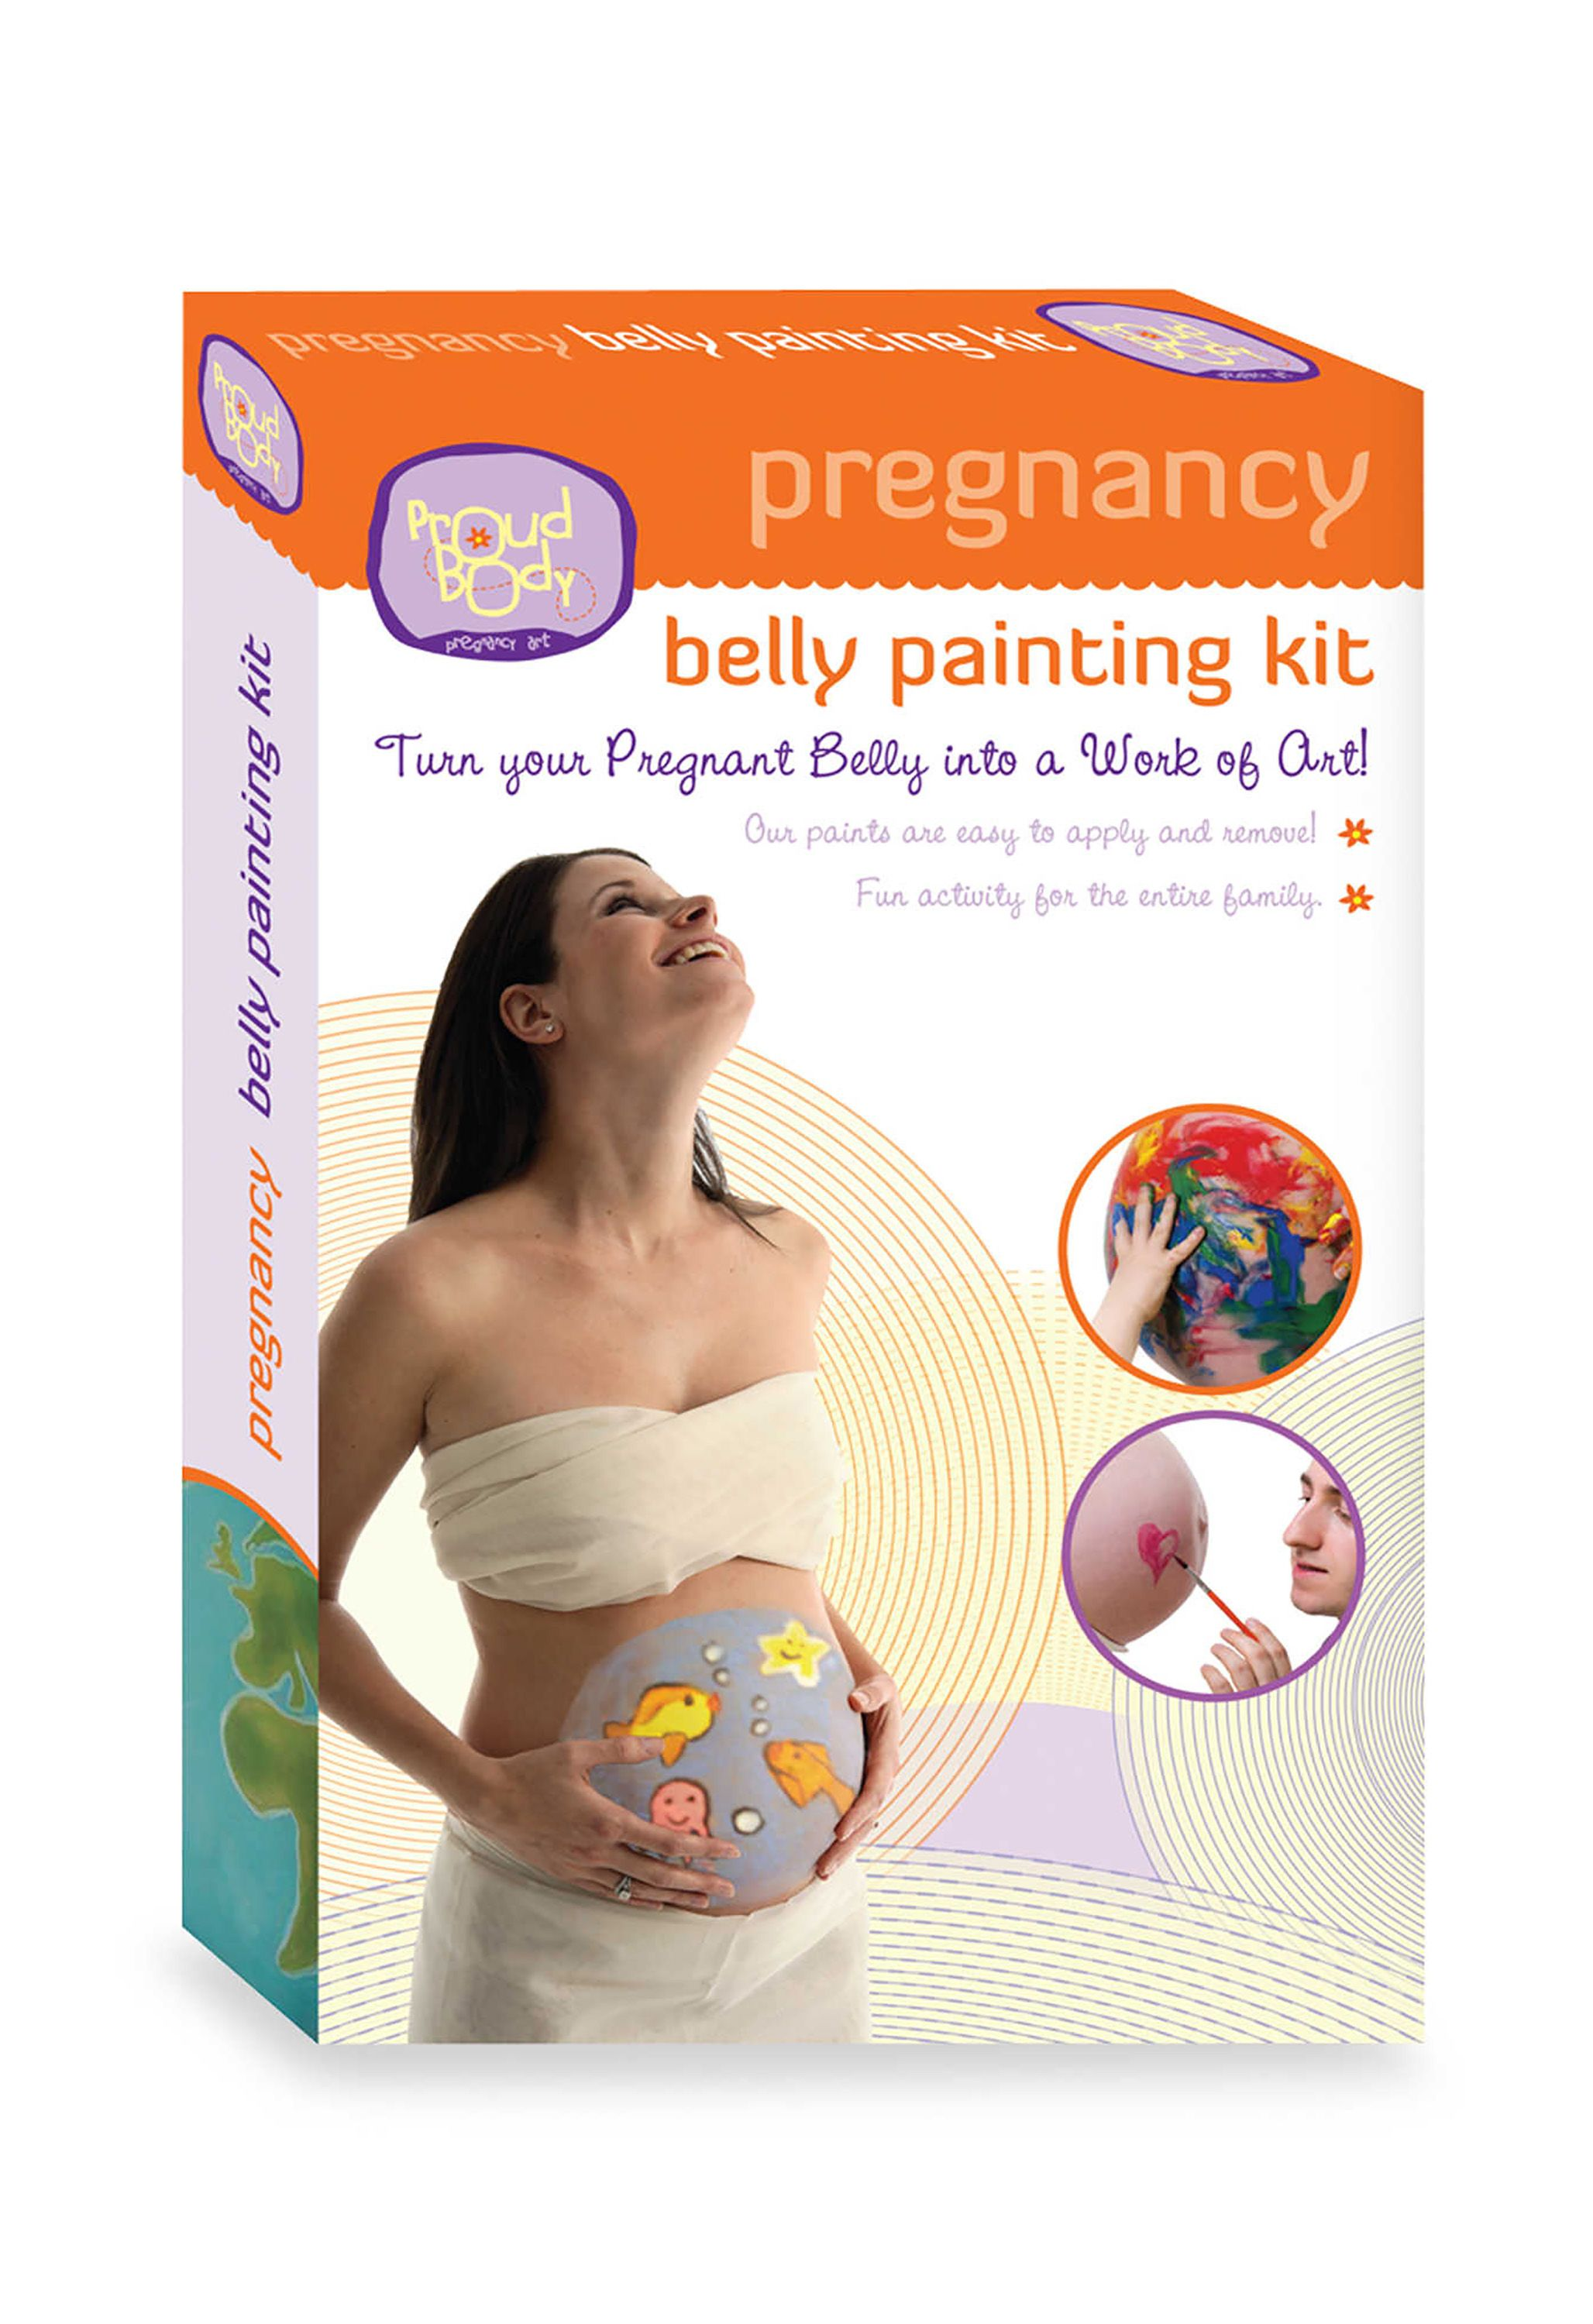 20 Best Gifts For Pregnant Women - Cute Pregnancy Gifts for New Moms